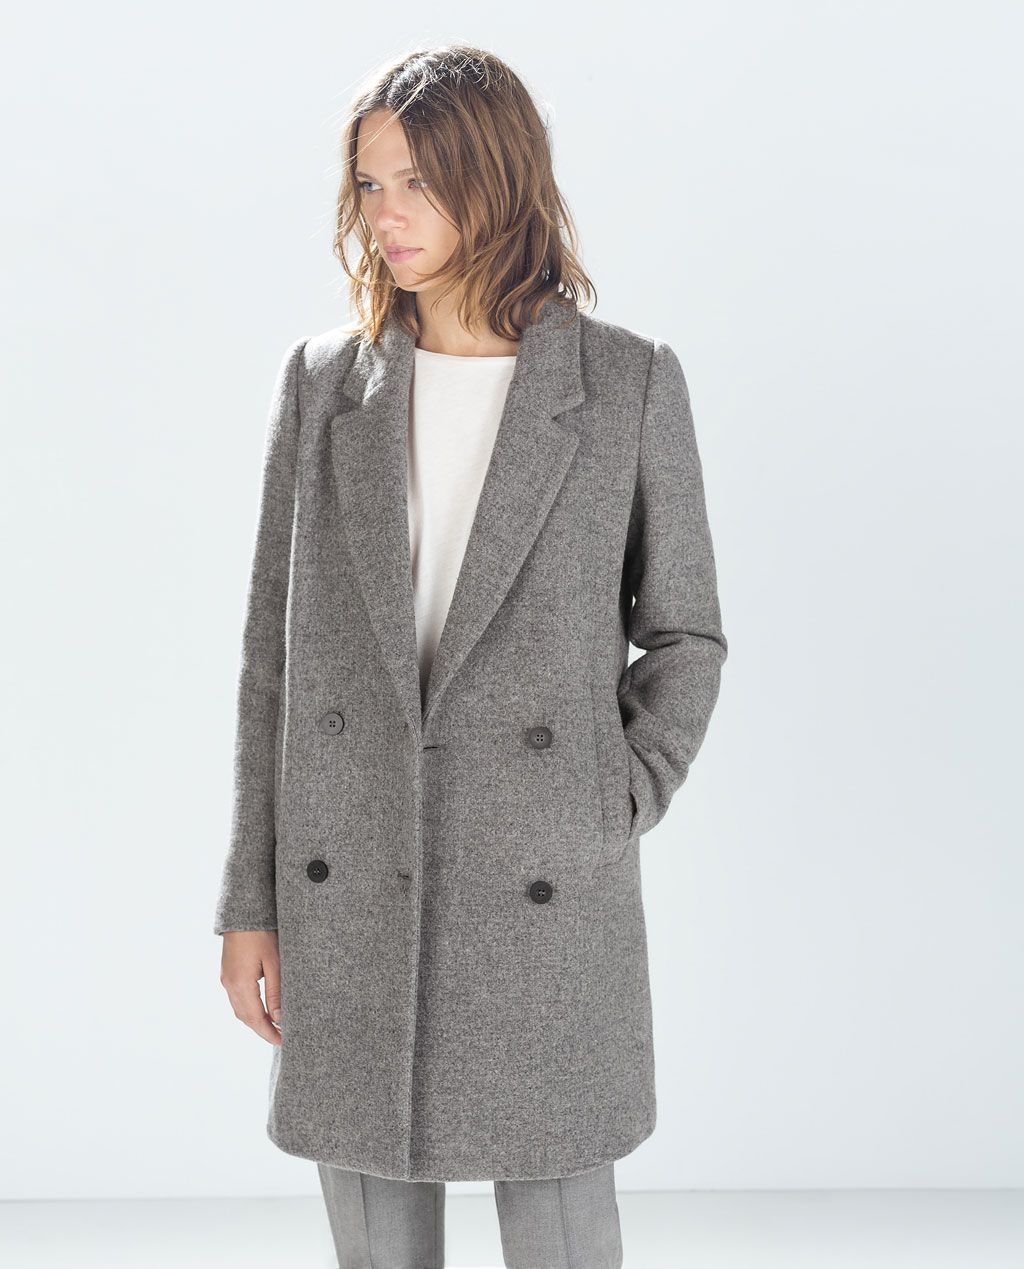 Image 4 Of Structured Coat From Zara Abrigos Pano Ropa